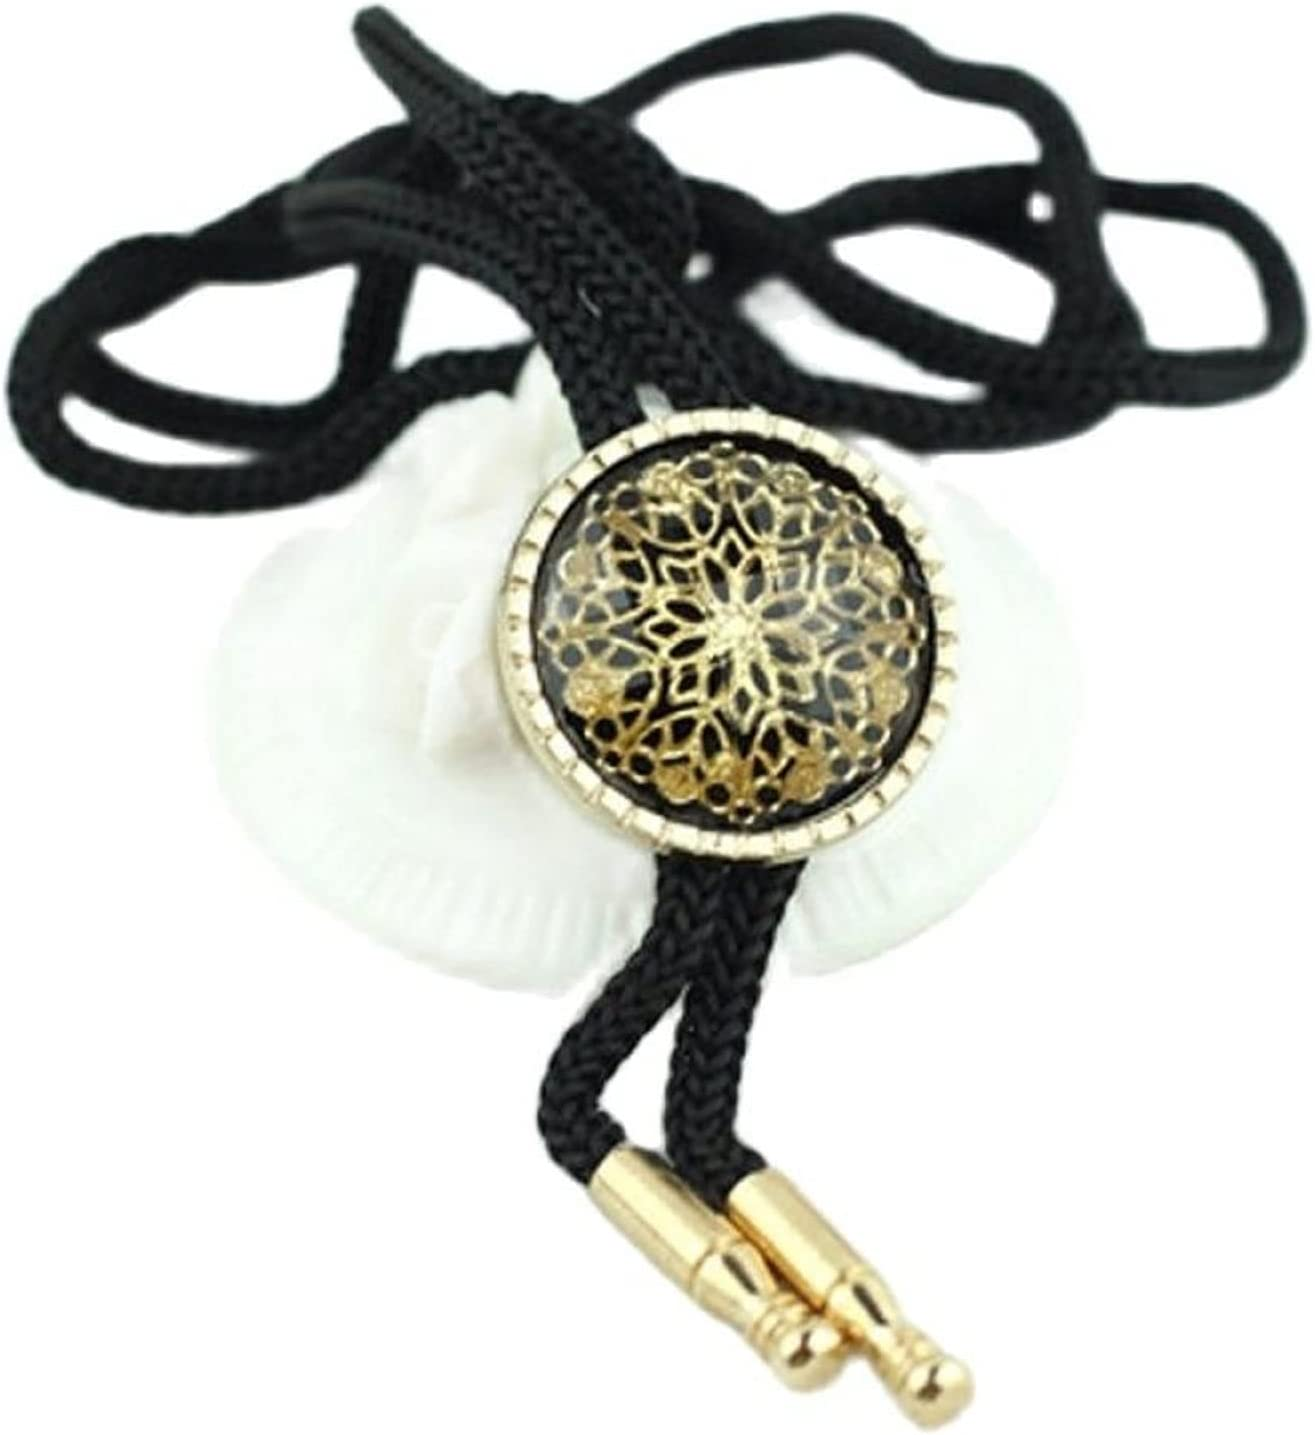 YPYSD Bolo Ties Fashionable Bolotie Unisex Jewelry Fashion Flower Round Pendant Necklaces Dance Bolo Tie Western Cowboy Rope Belt Necktie for Men and Women Ties